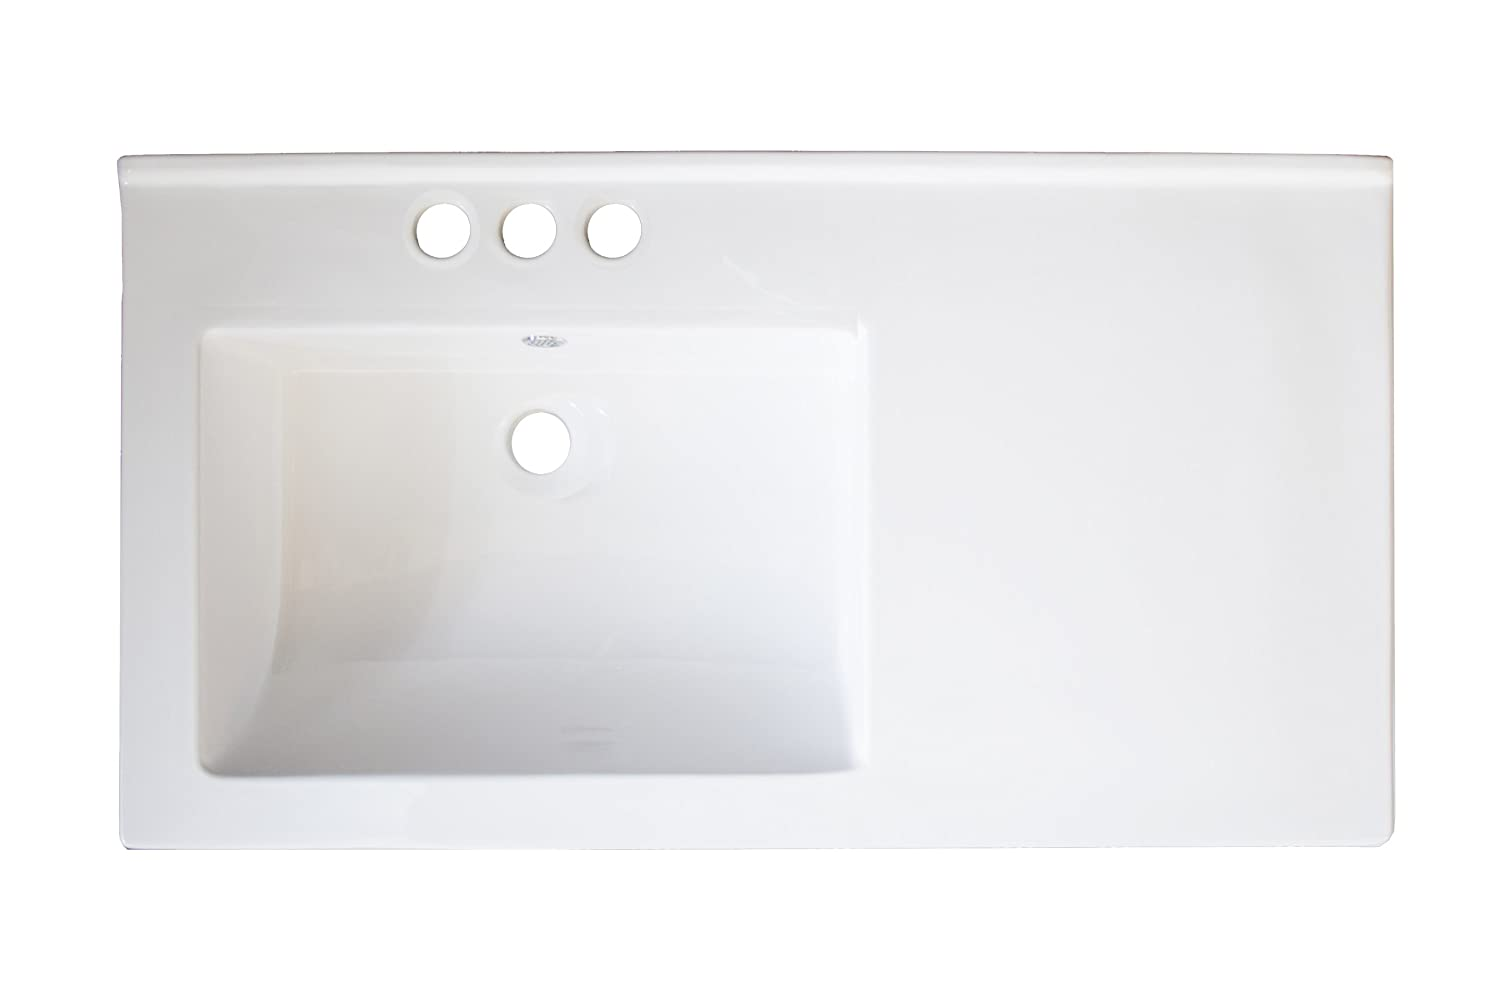 American Imaginations AI-13-710 Ceramic Top for 4-Inch OC Faucet, 34-Inch x 18-Inch, White